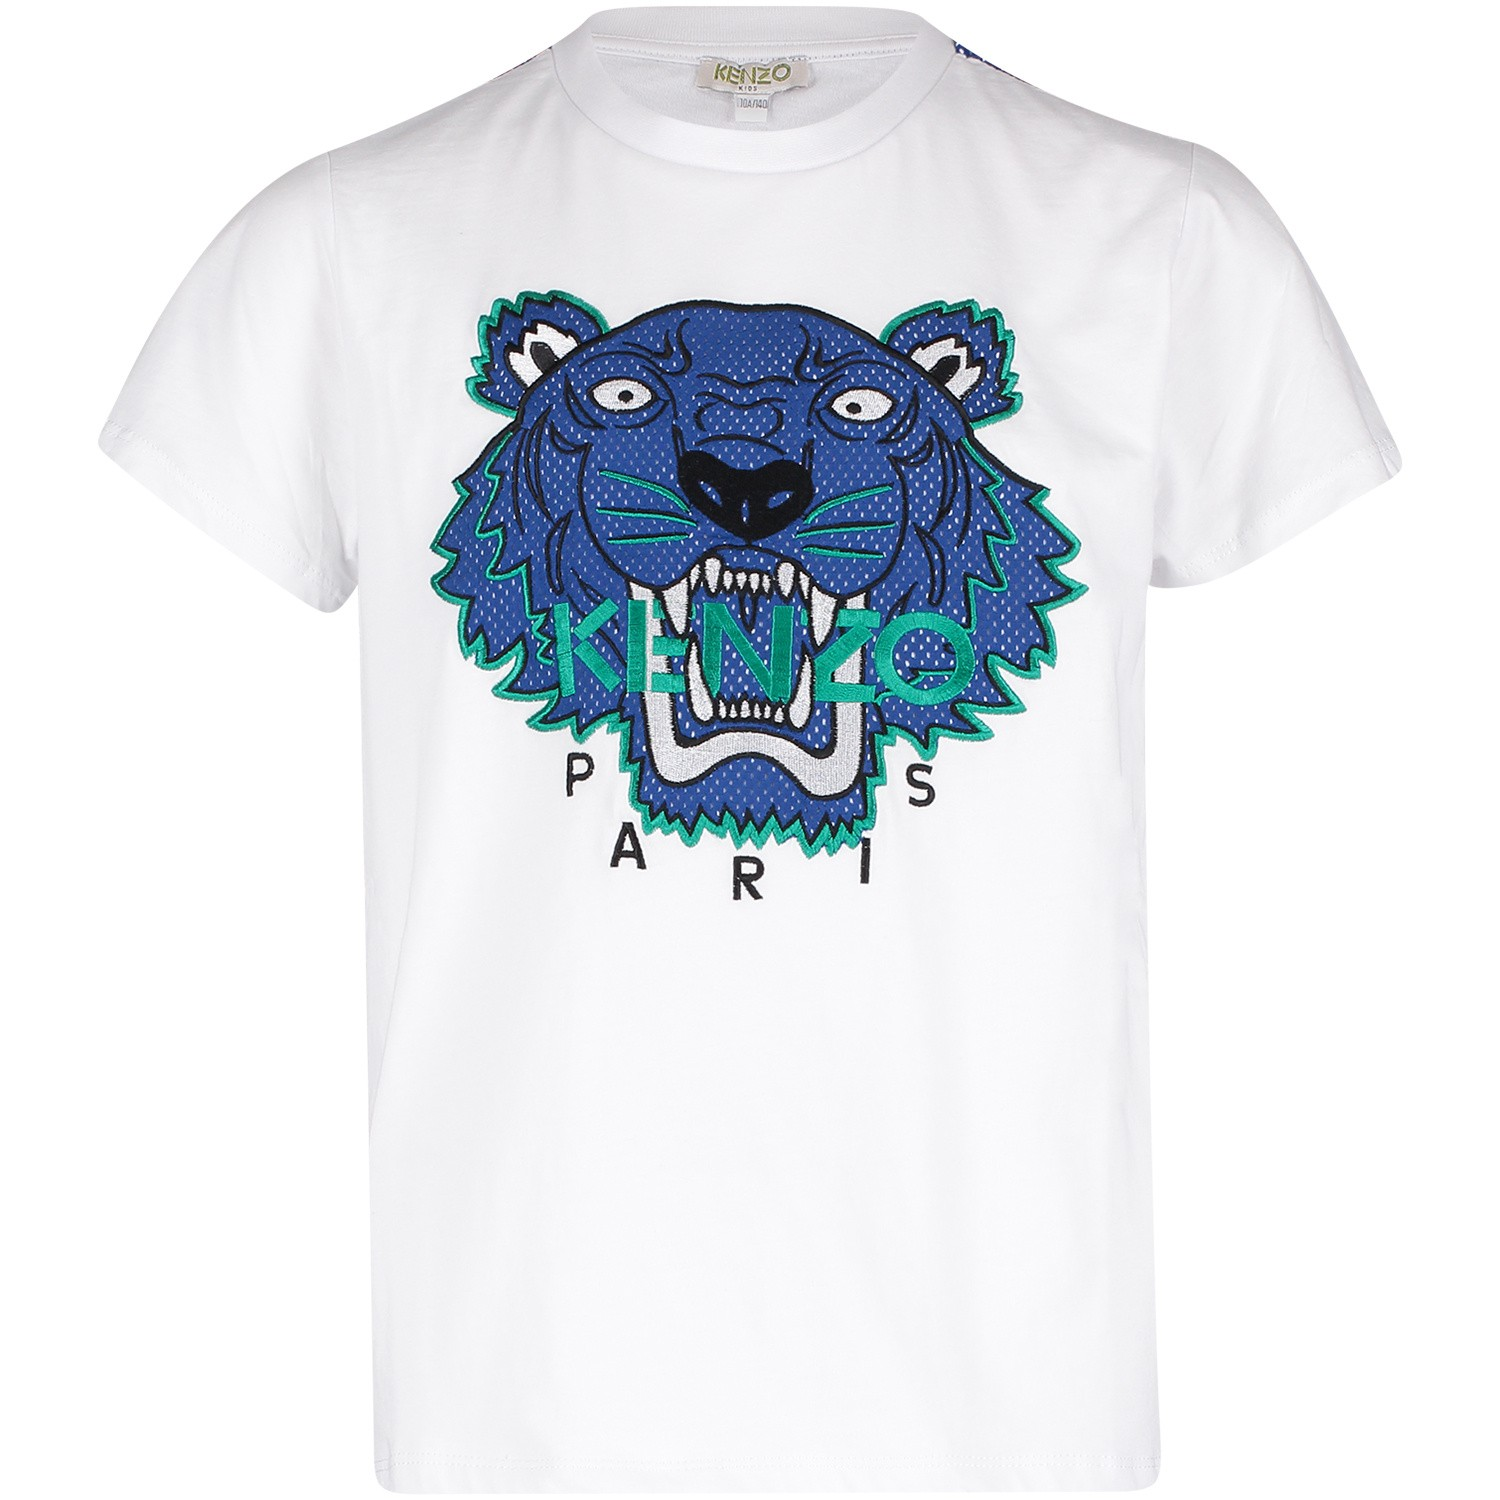 Picture of Kenzo KN10708 kids t-shirt white